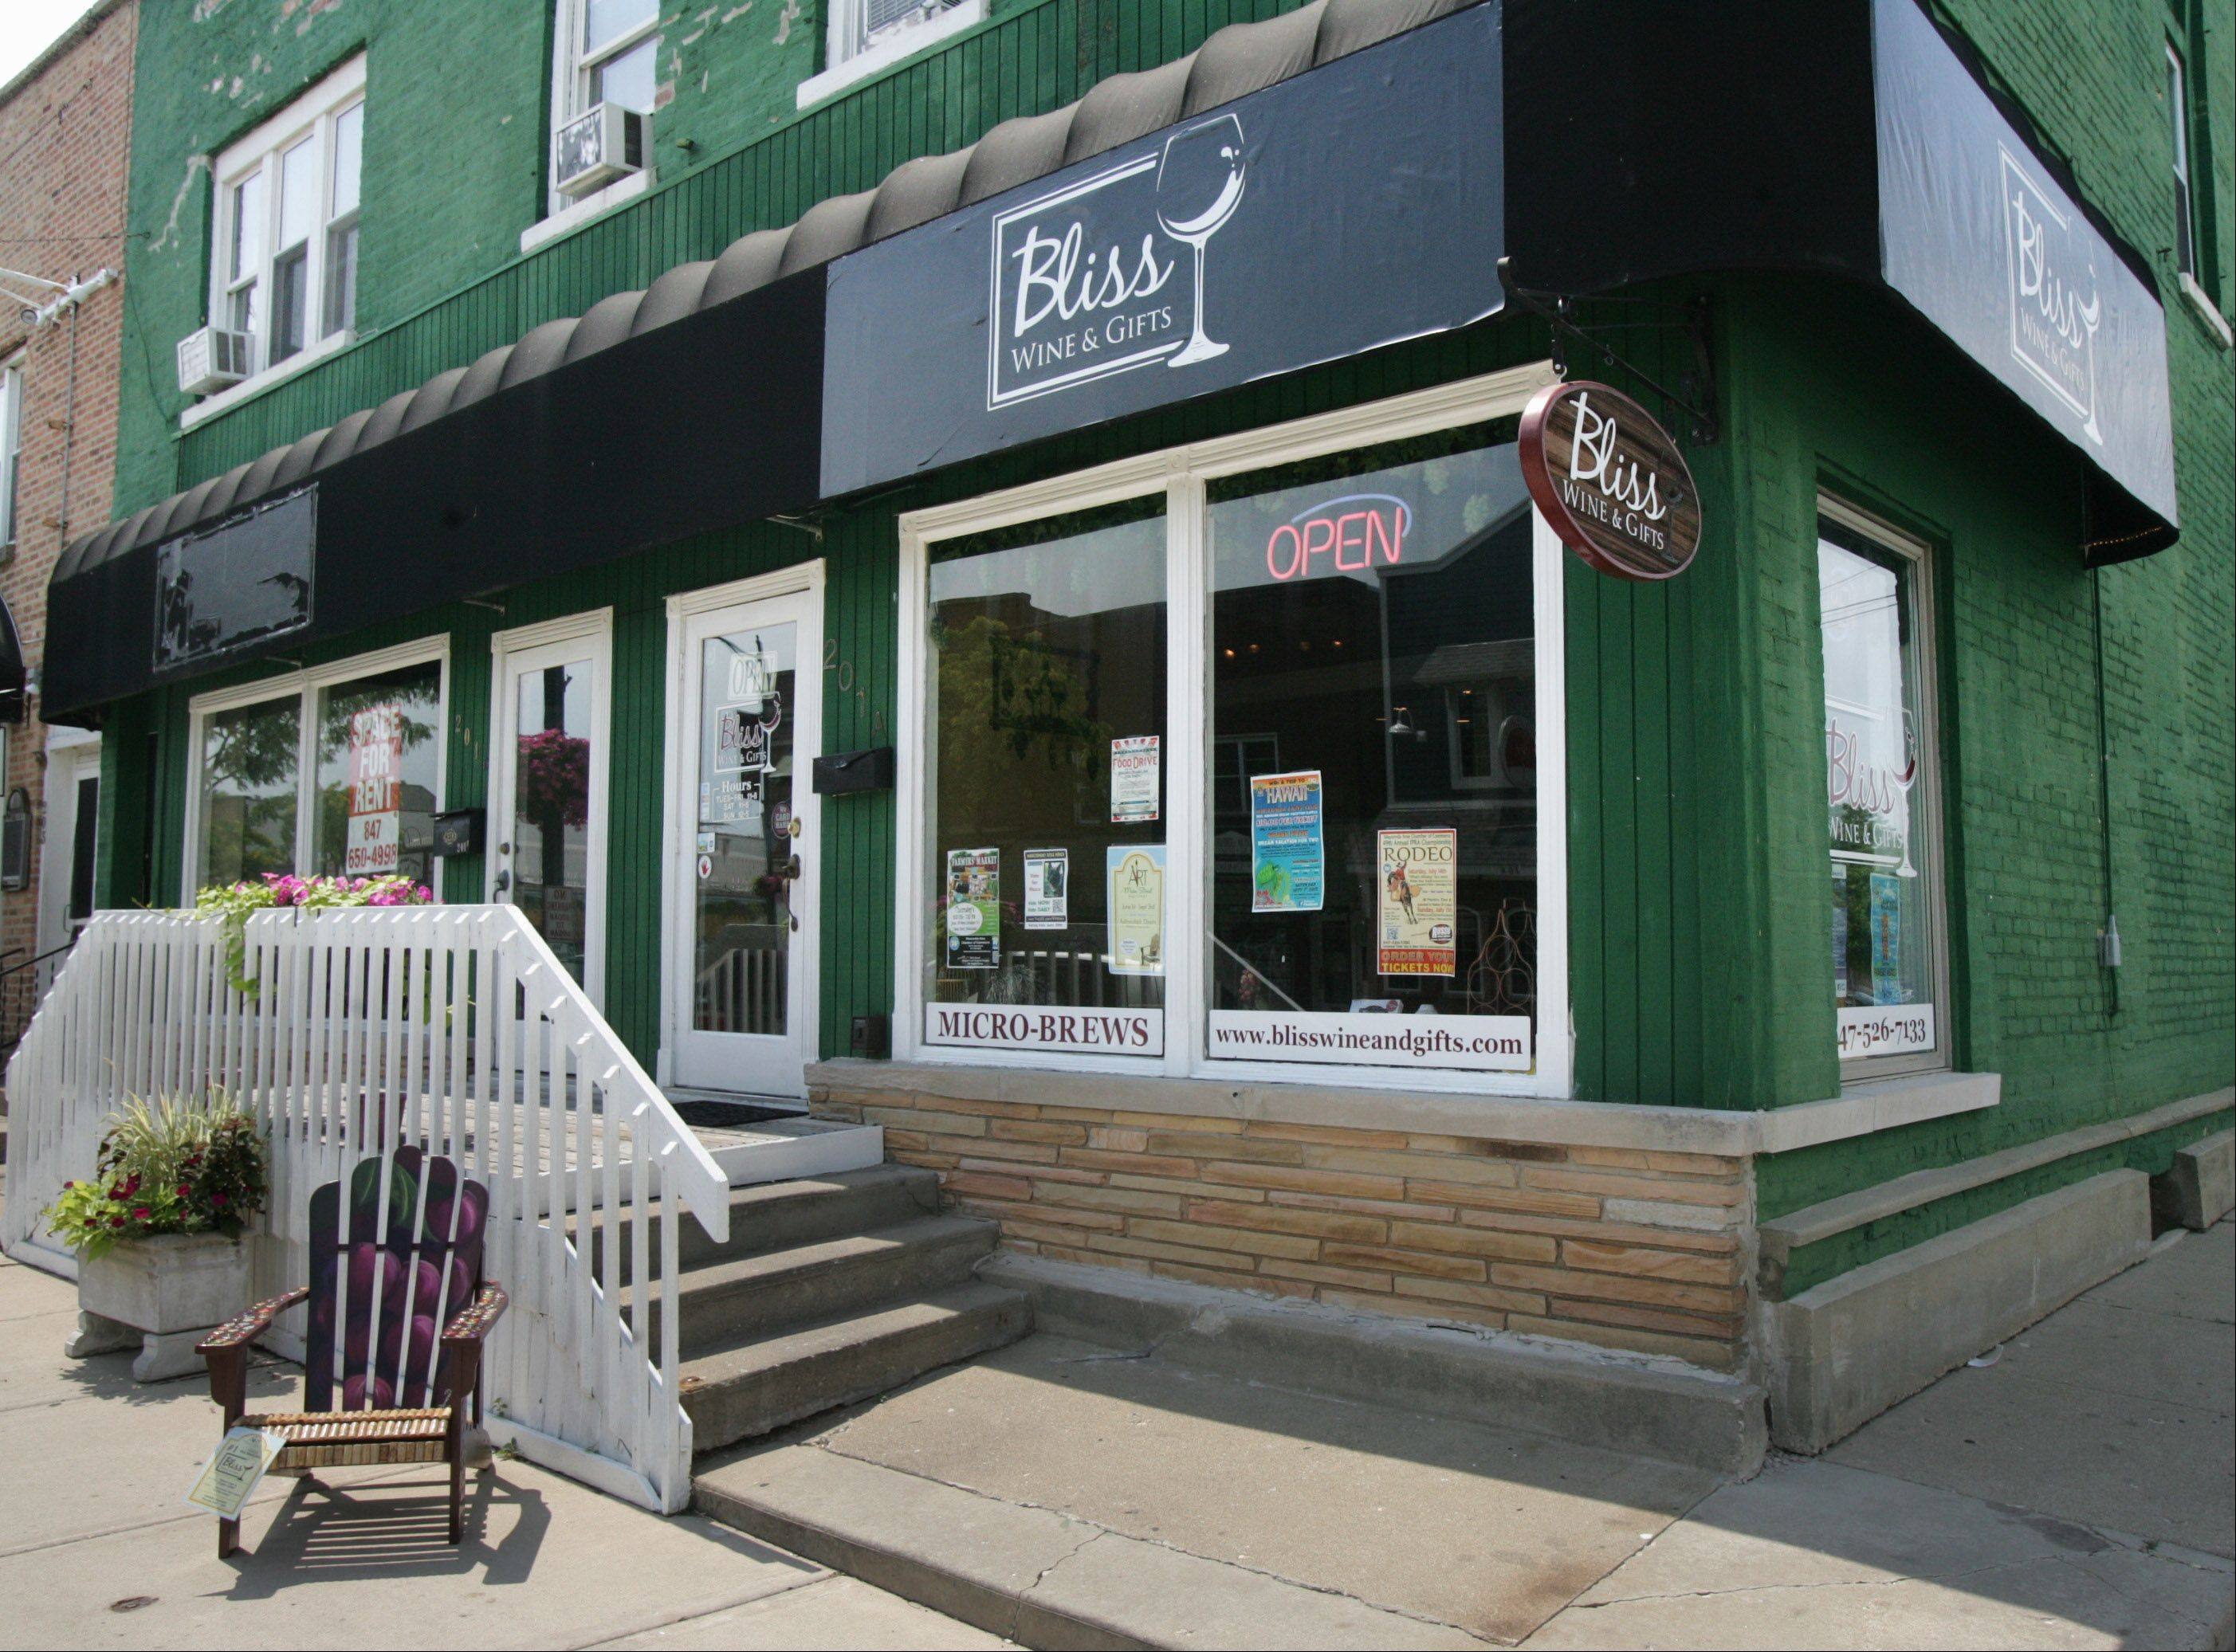 Bliss Wine & Gifts offers wine and appetizers and seating to enjoy takeout from nearby restaurants.